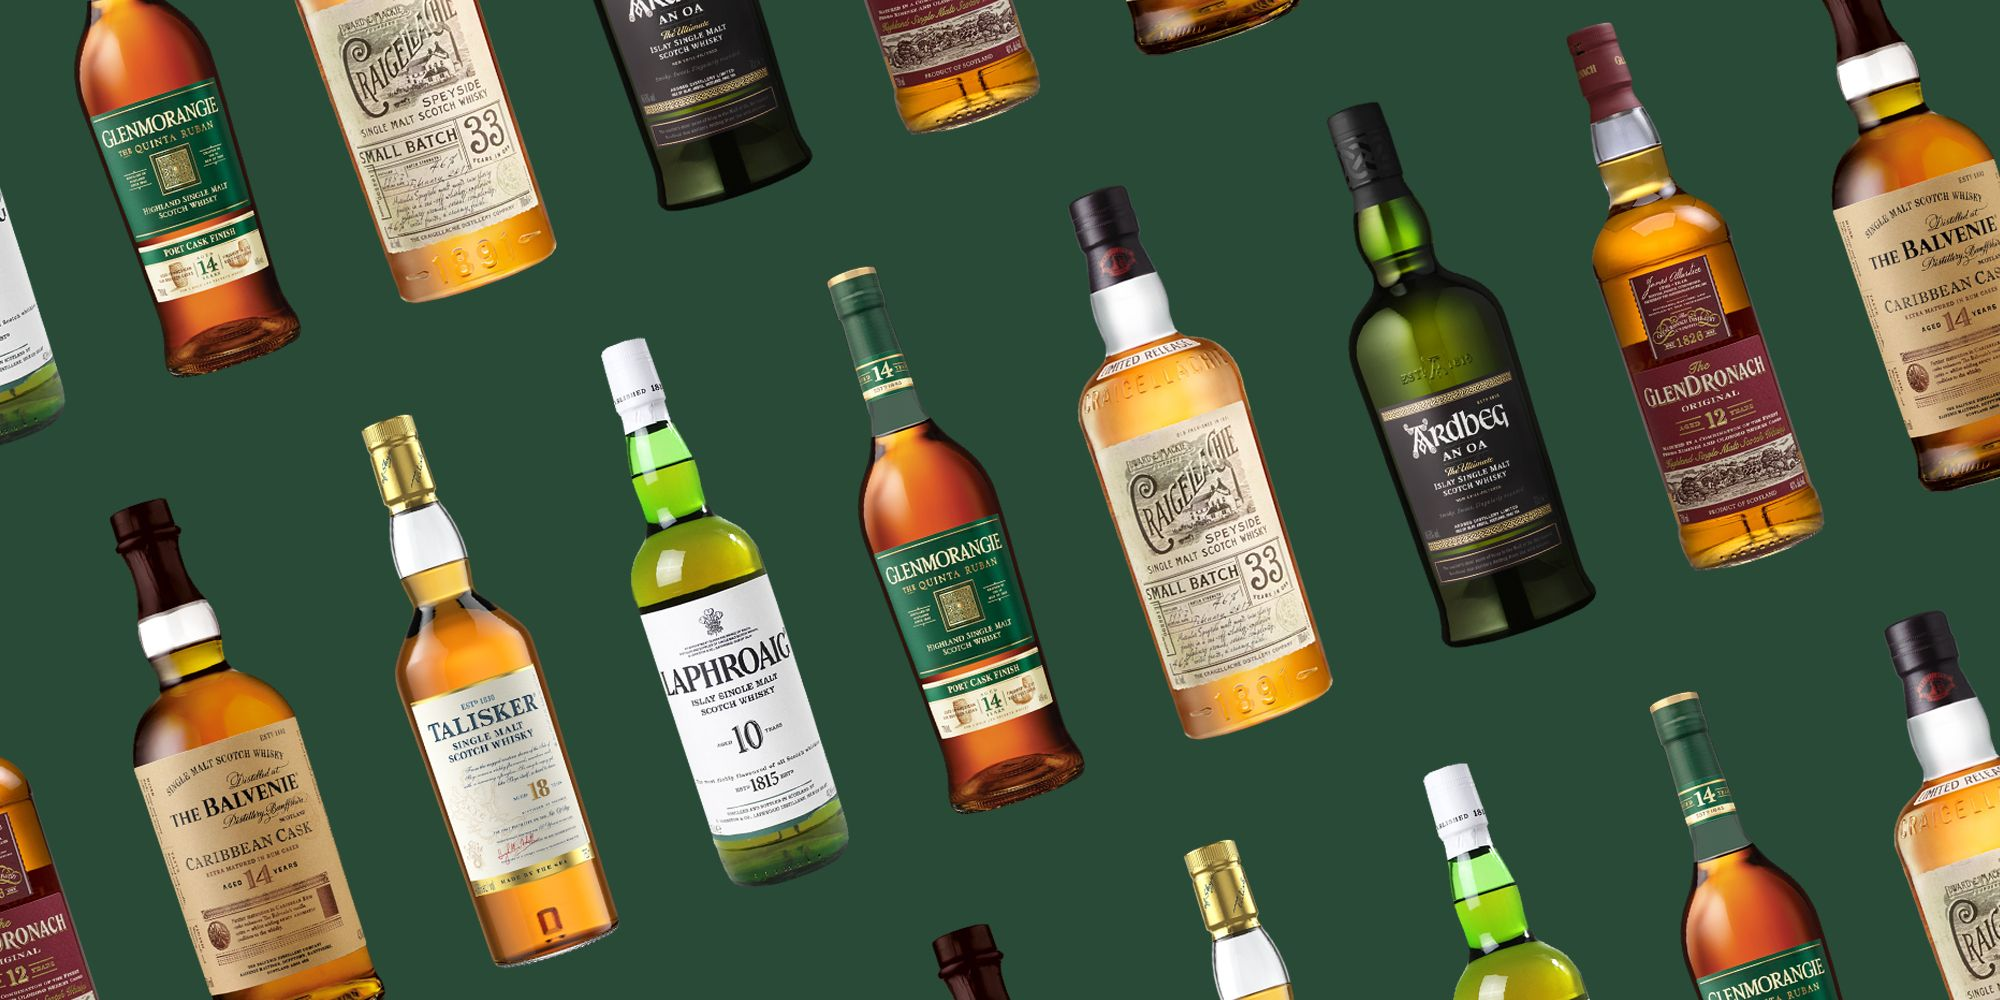 The 12 Best Single Malt Scotch Brands to Drink Now